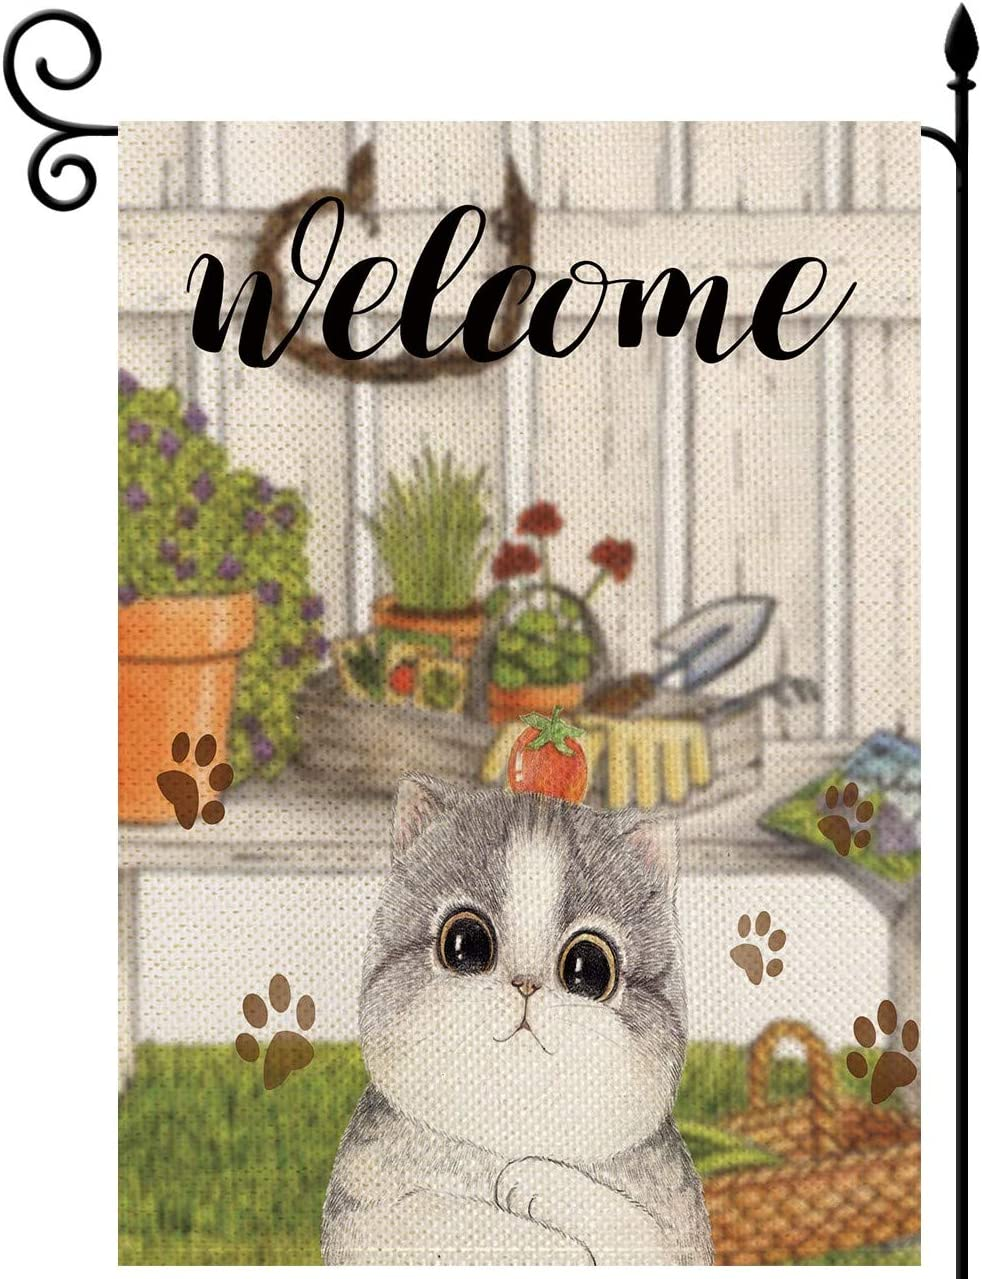 YaoChong Cute Cat Small Garden Flag Vertical Burlap Double Sided 12x18 Inch,Welcome Cat Pet Flag Seasonal Summer House Yard Lawn Decor